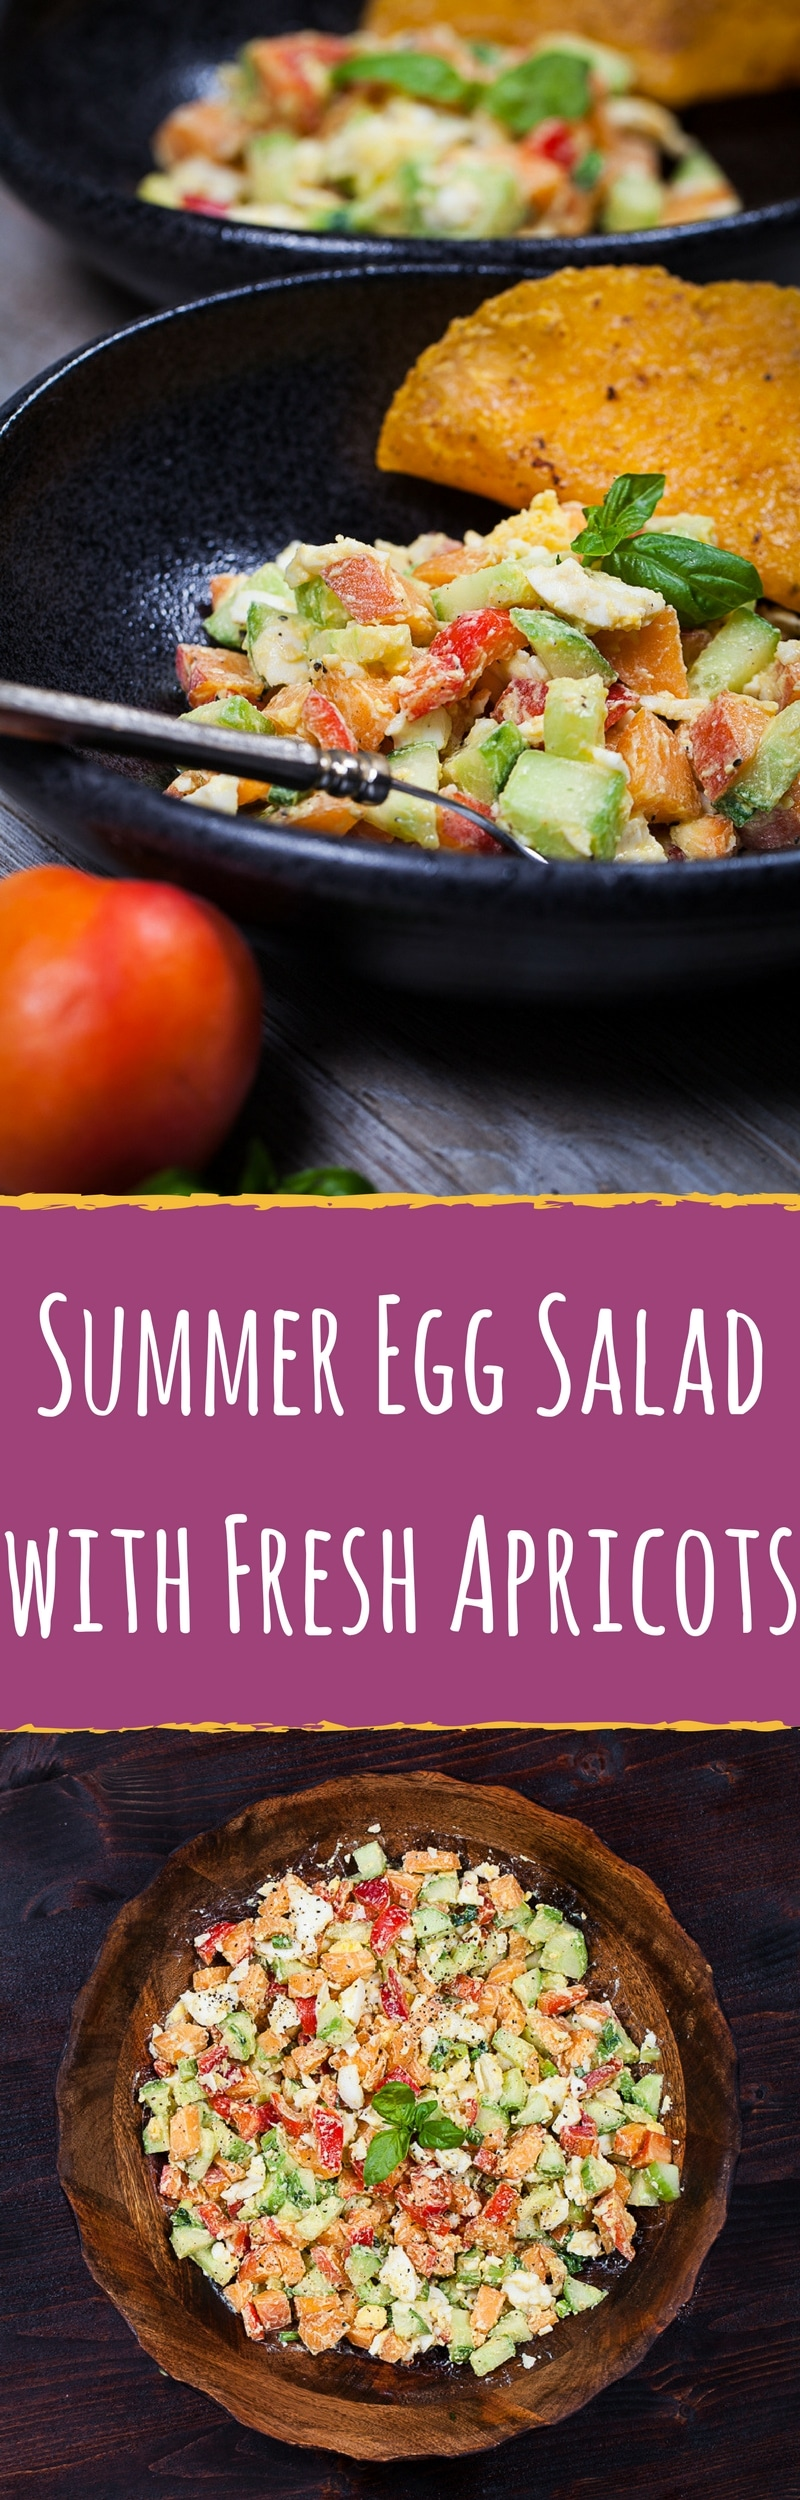 Summer Egg Salad with Fresh Apricots